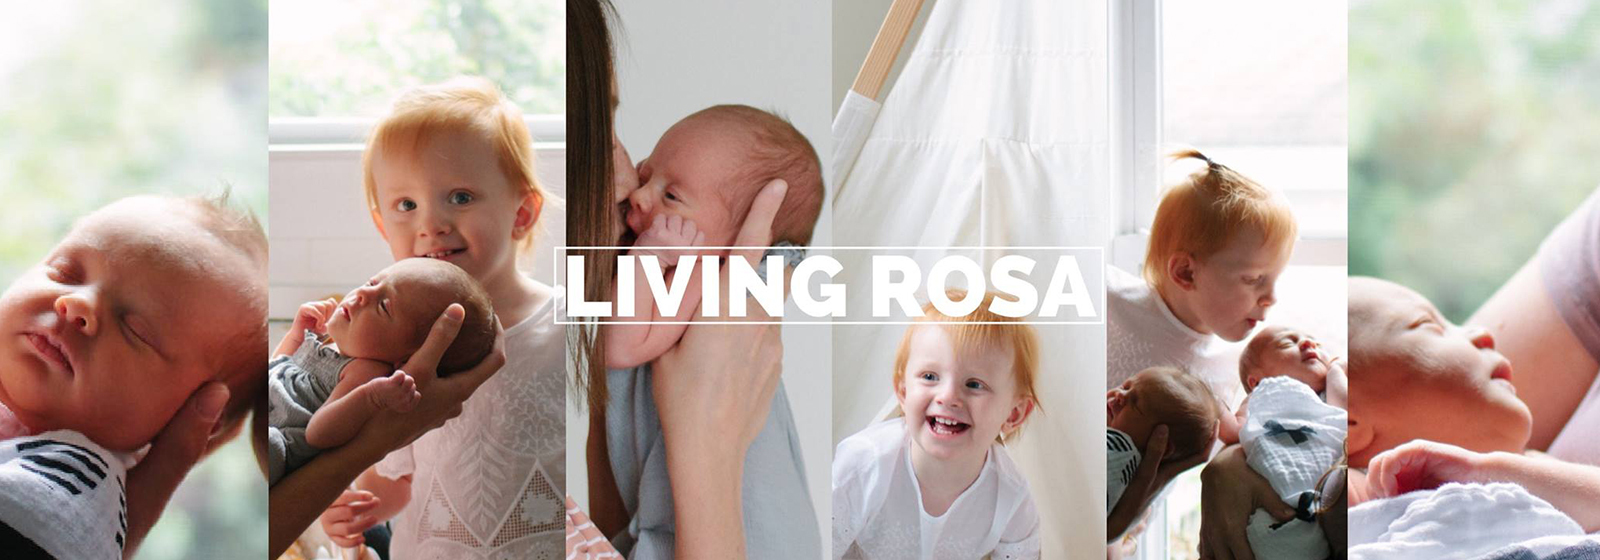 Living Rosa Store Store